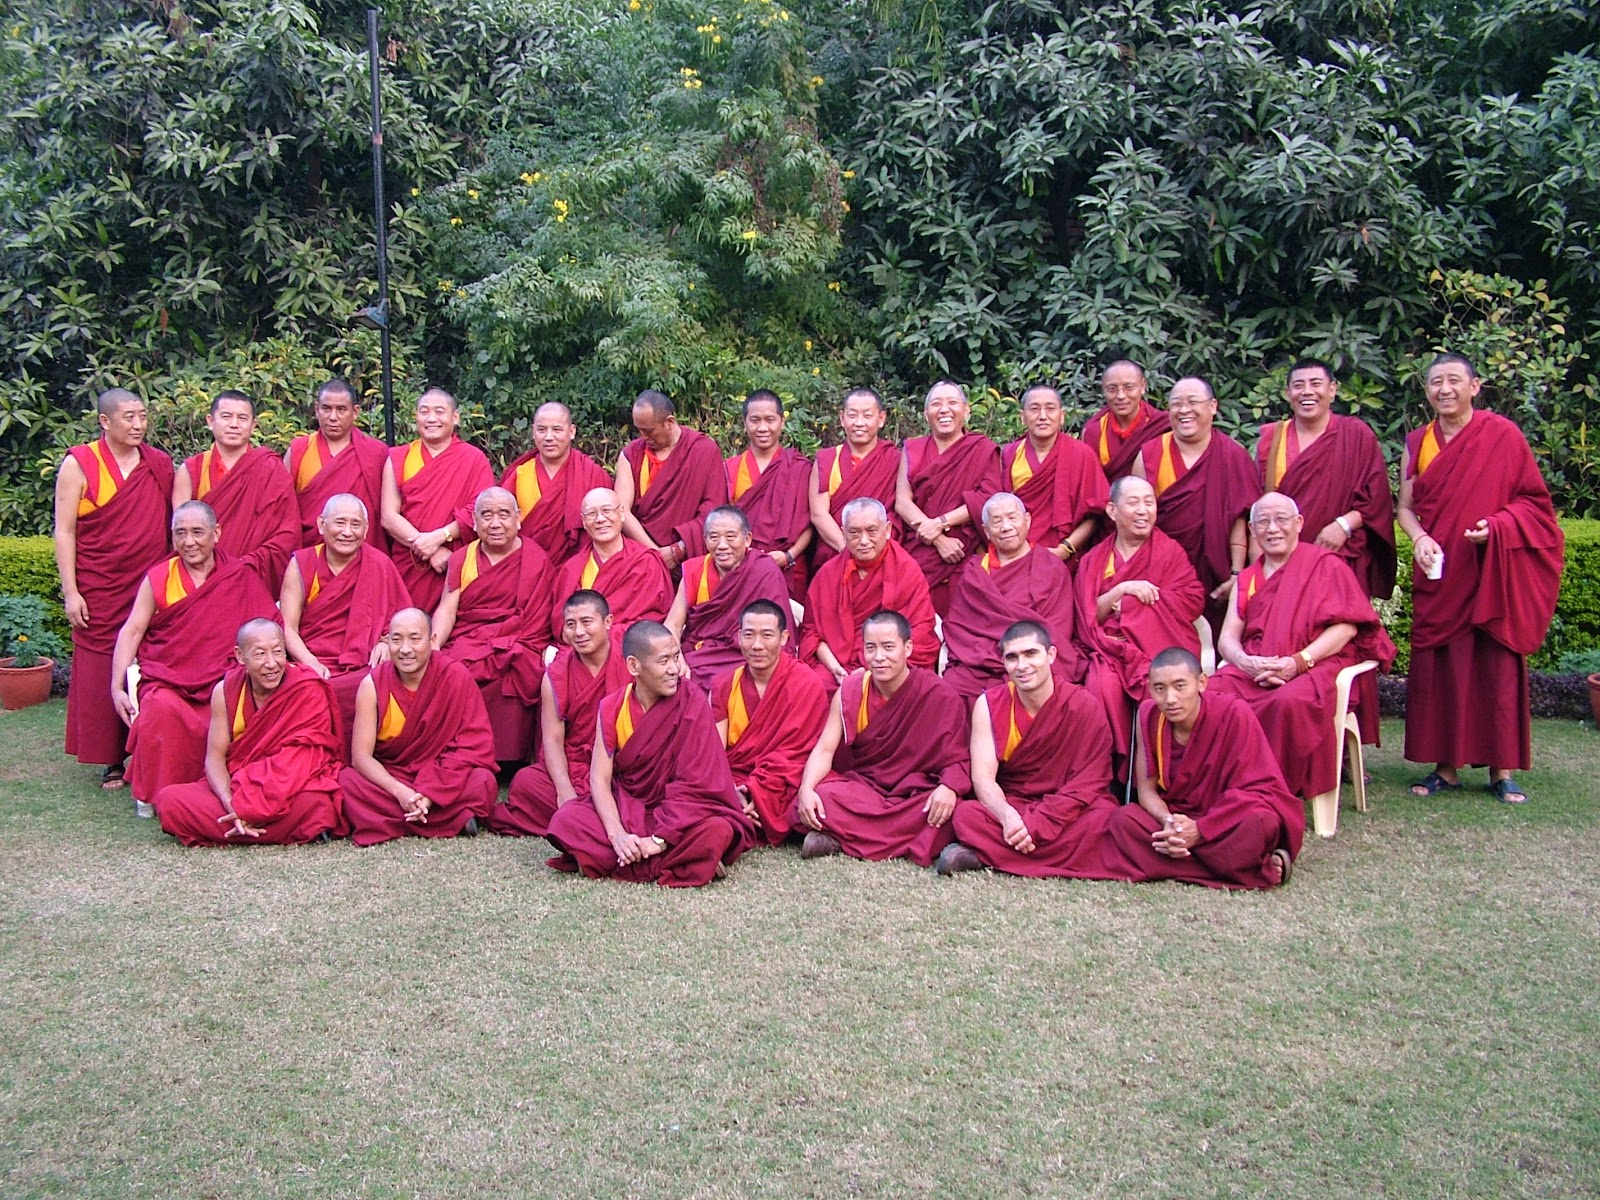 Offerings of robes are sponsored every year to FPMT resident teachers and Geshe